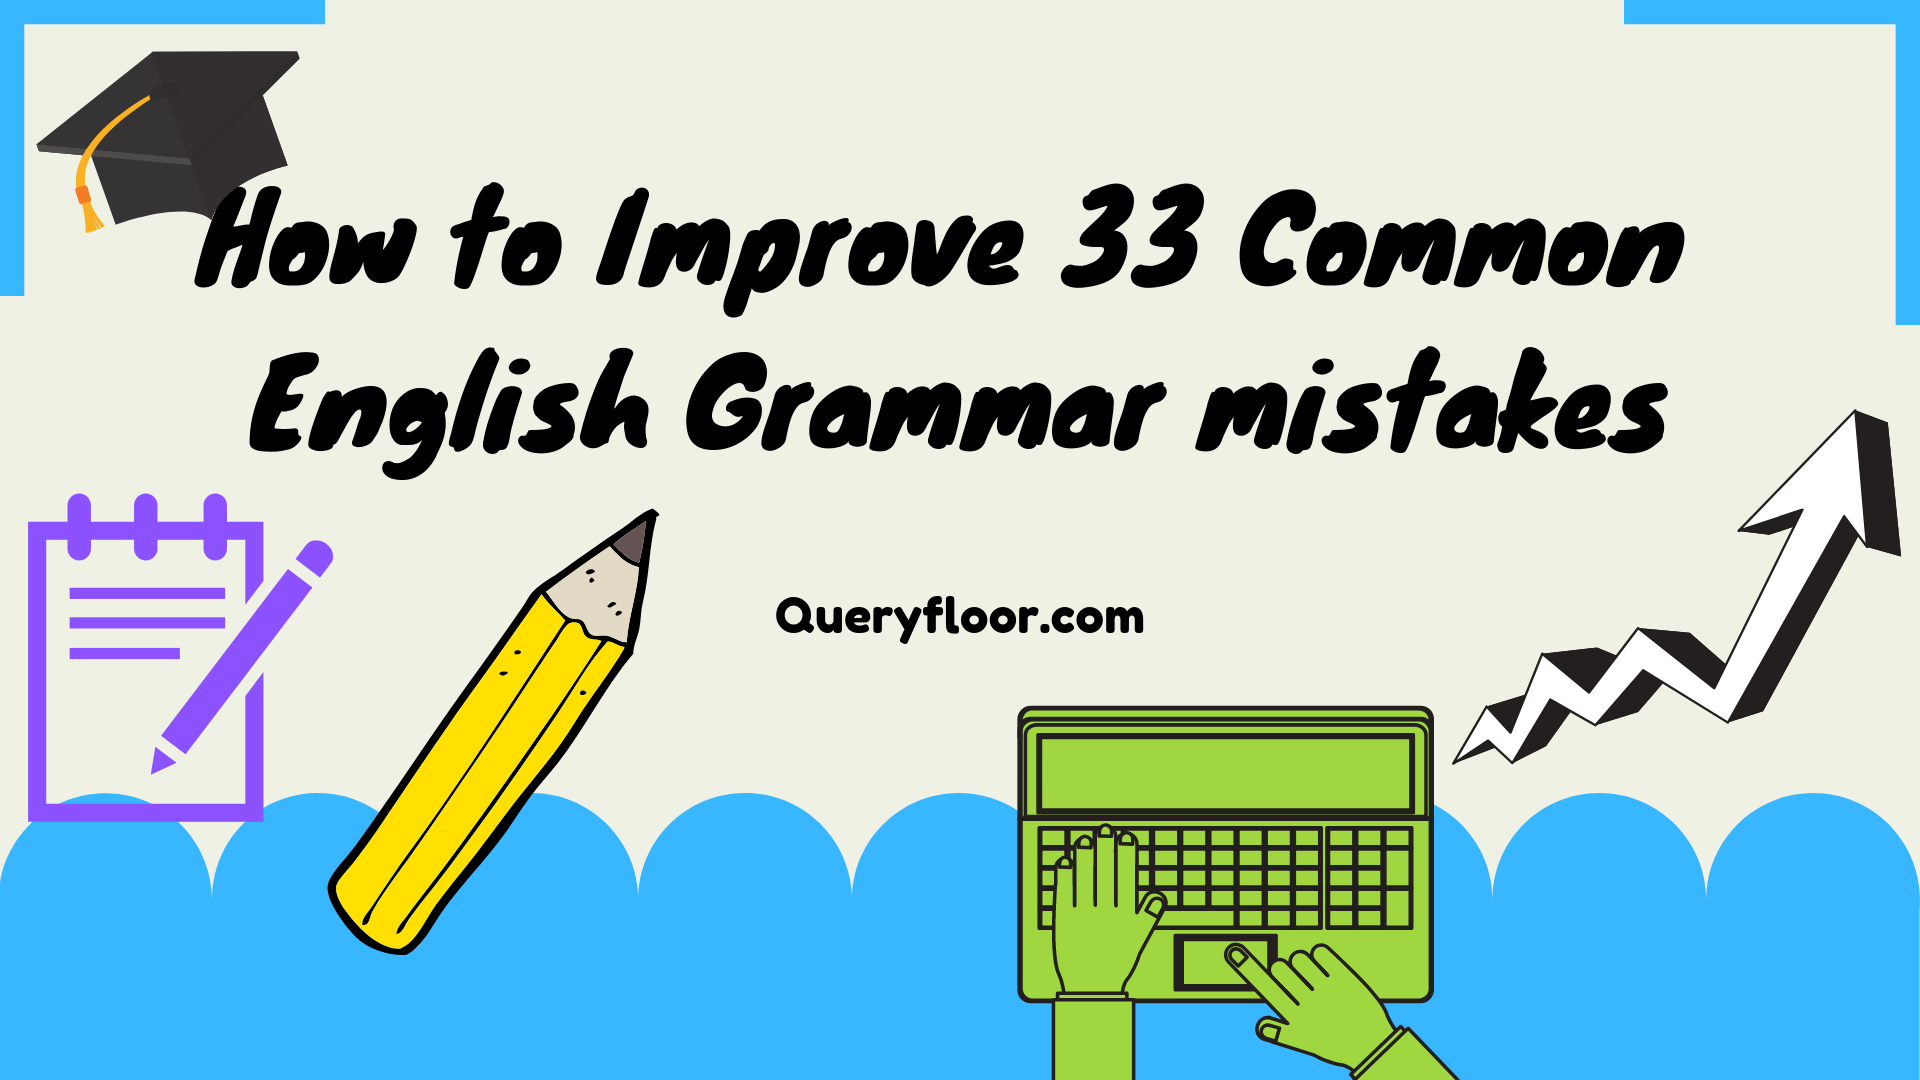 How To Improve 33 Common English Grammar Mistakes